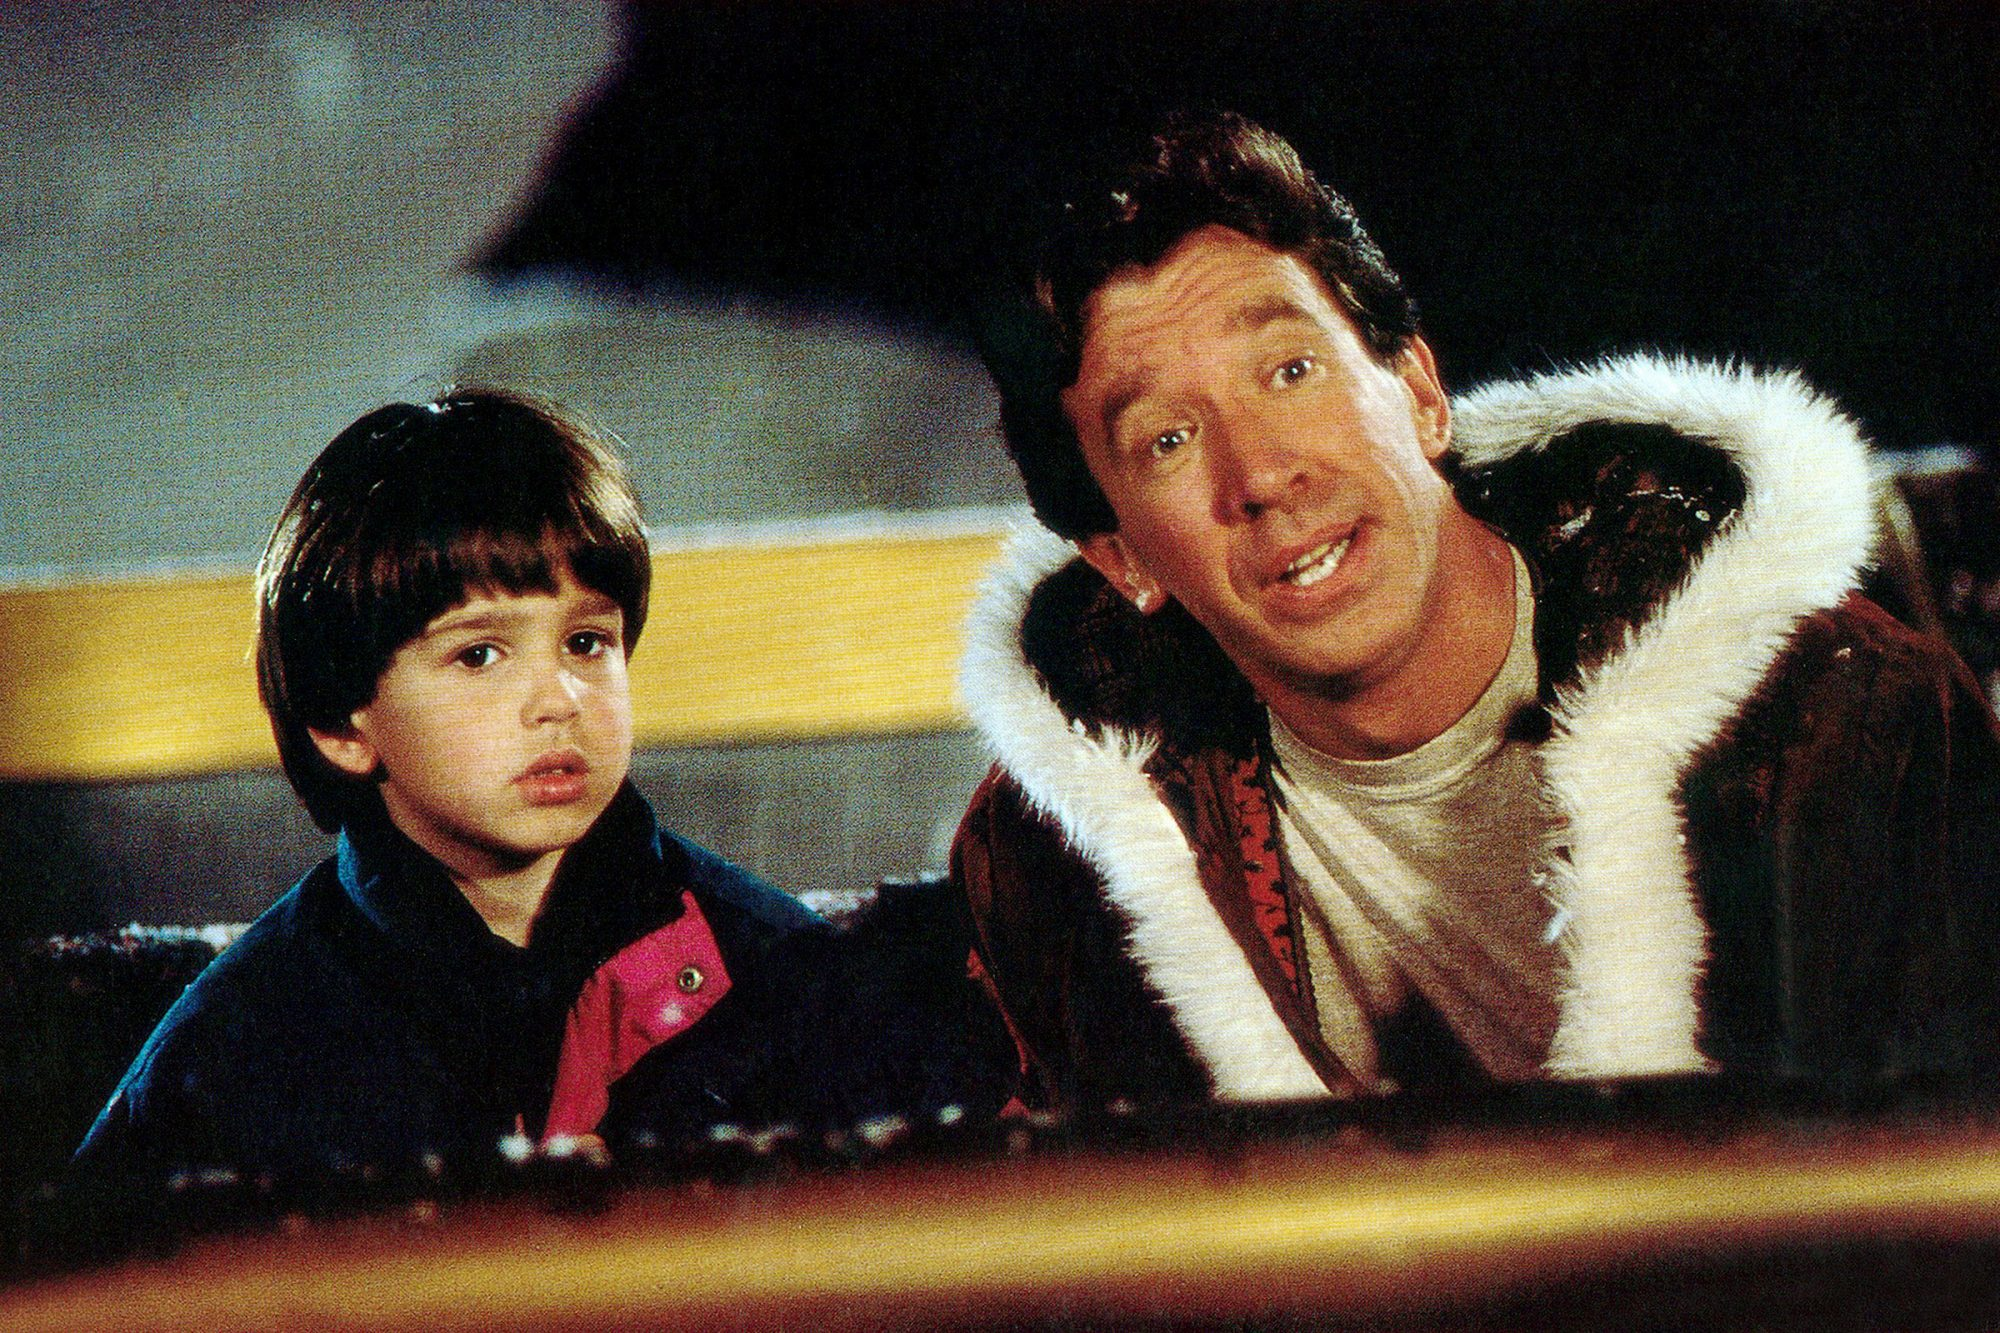 THE SANTA CLAUSE, from left: Eric Lloyd, Tim Allen, 1994, © Buena Vista/courtesy Everett Collection